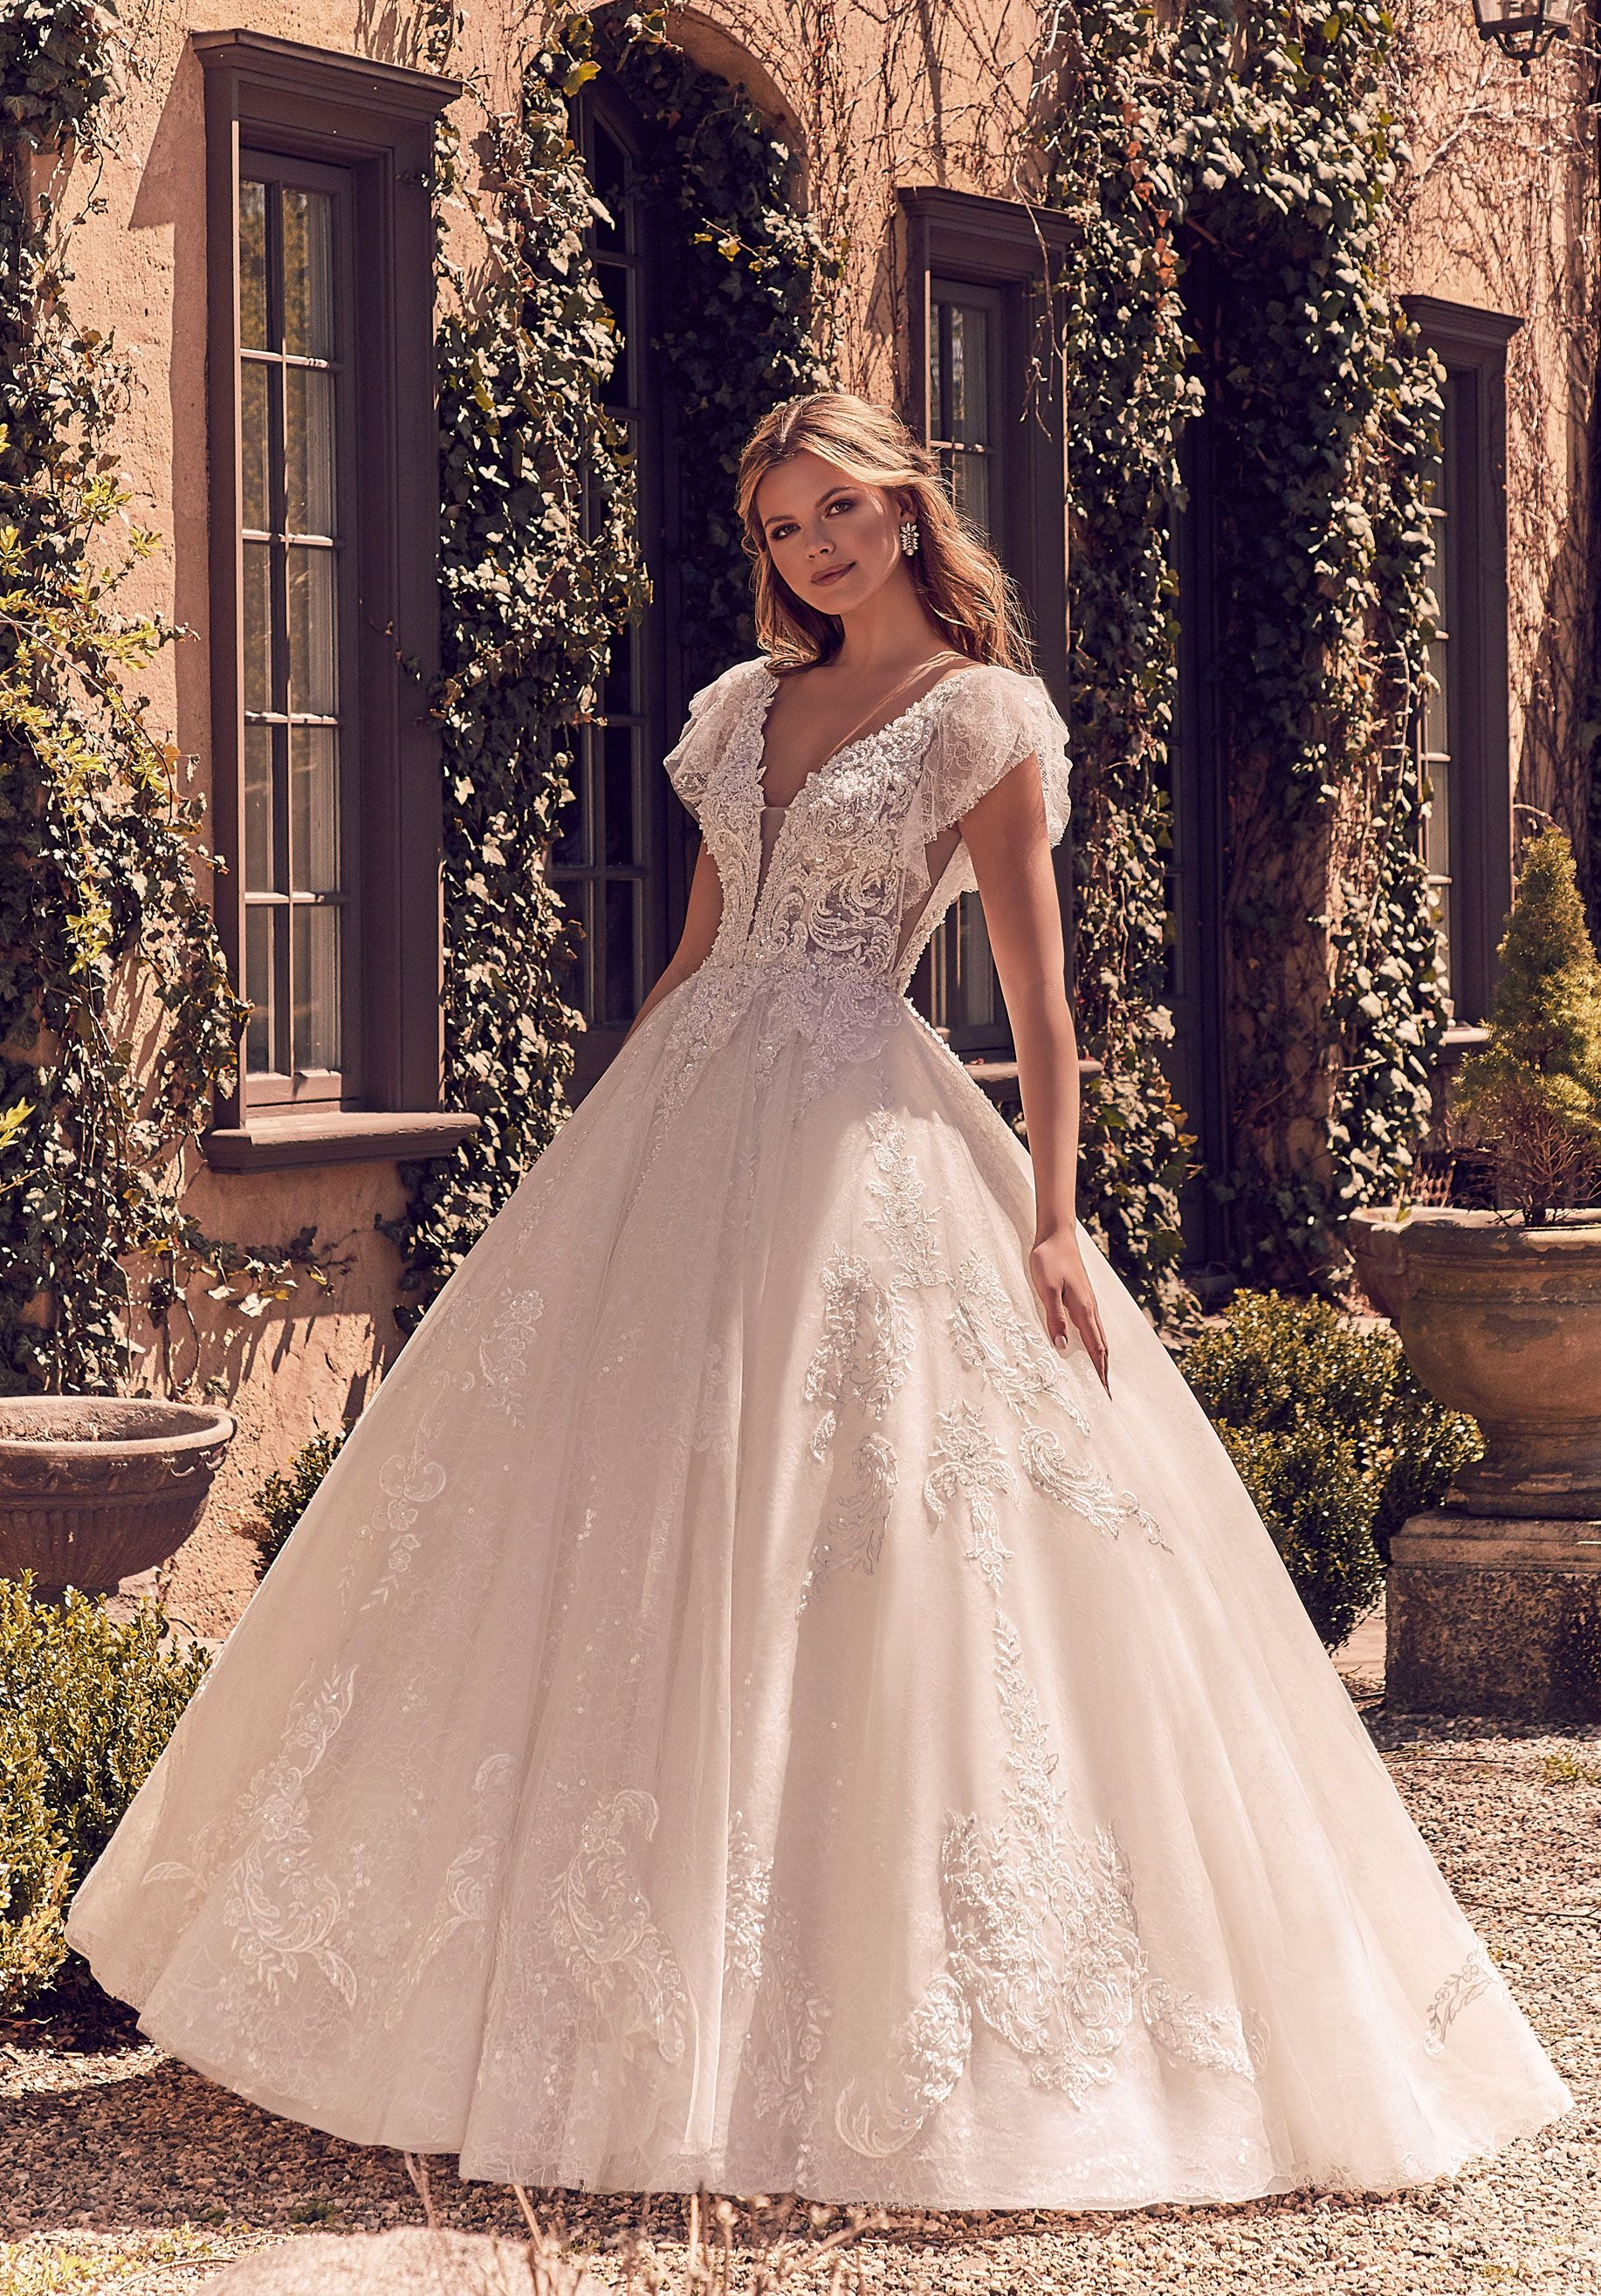 Https Morilee S3 Amazonaws Com Wp Content Uploads 2019 05 16150748 2097 1093 Jpg In 2020 Unusual Wedding Dresses Bridal Dresses Cheap Wedding Dress